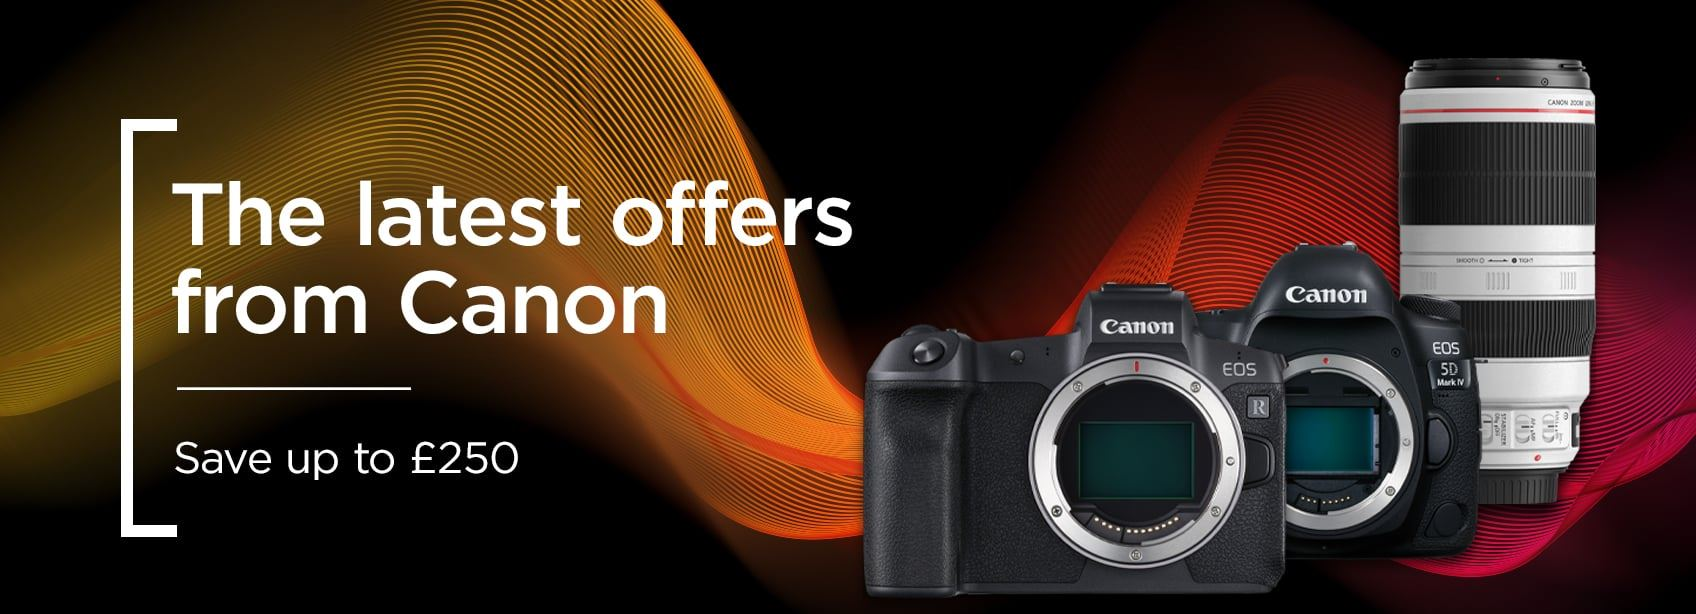 The latest offers from Canon - Save up to £250